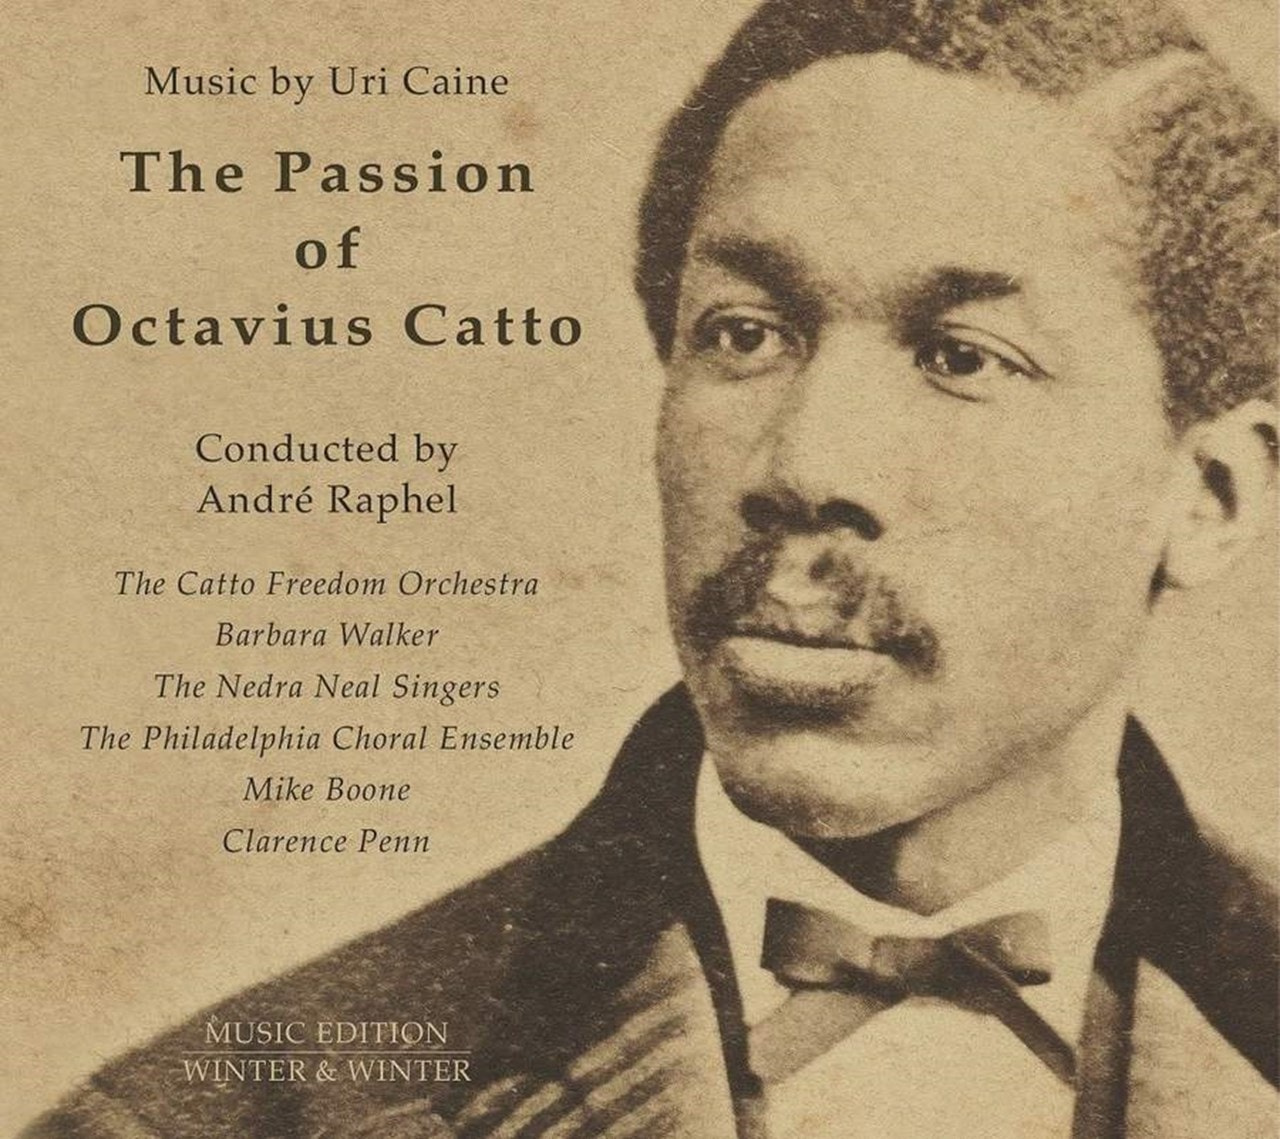 The Passion of Octavius Catto: Music By Uri Caine - 1